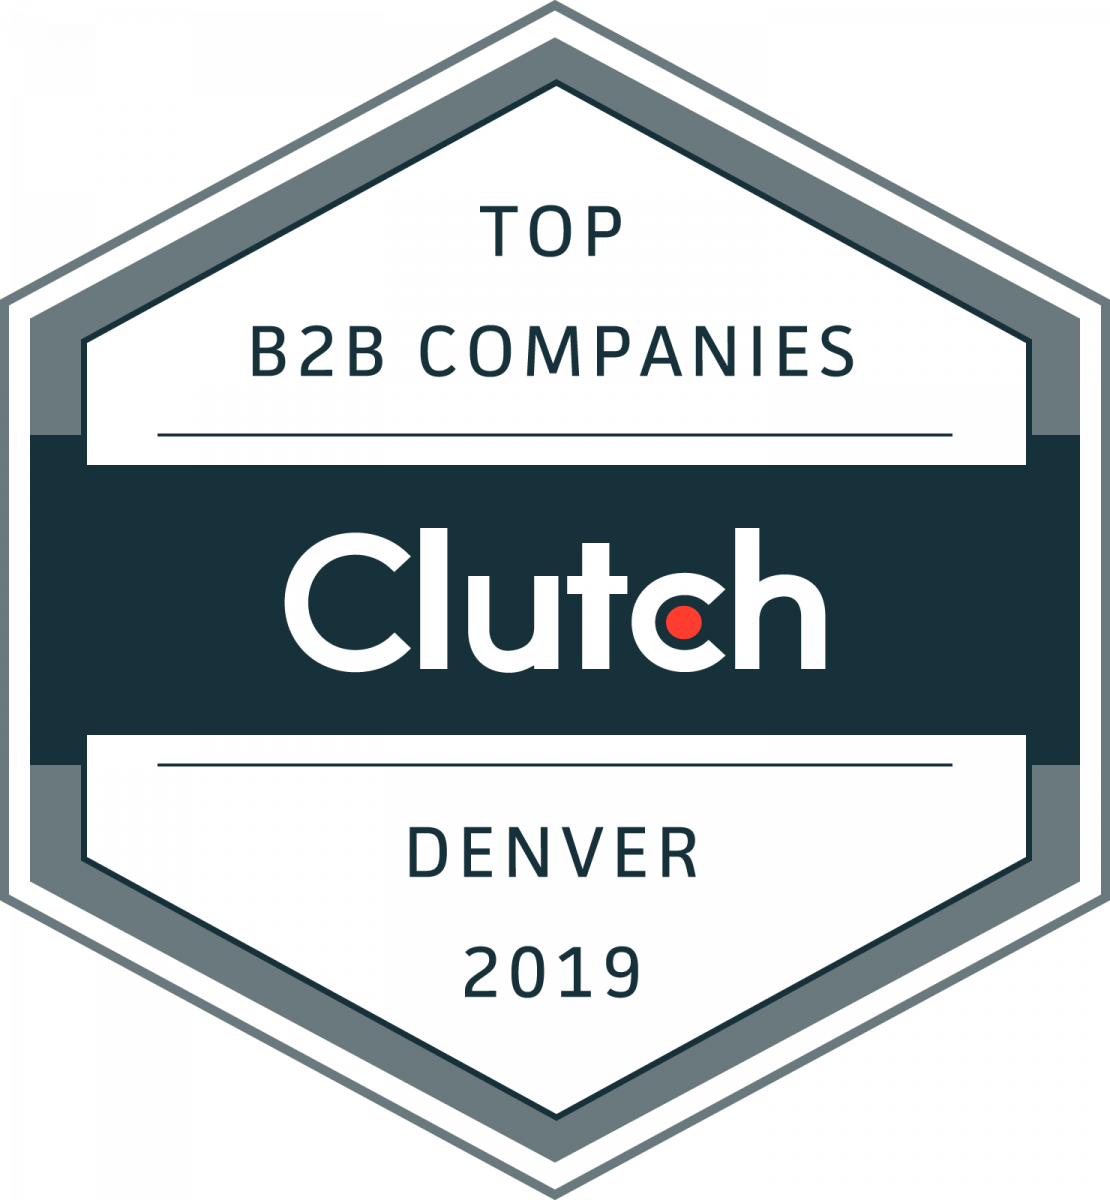 TOP Development Companies - Denver 2019